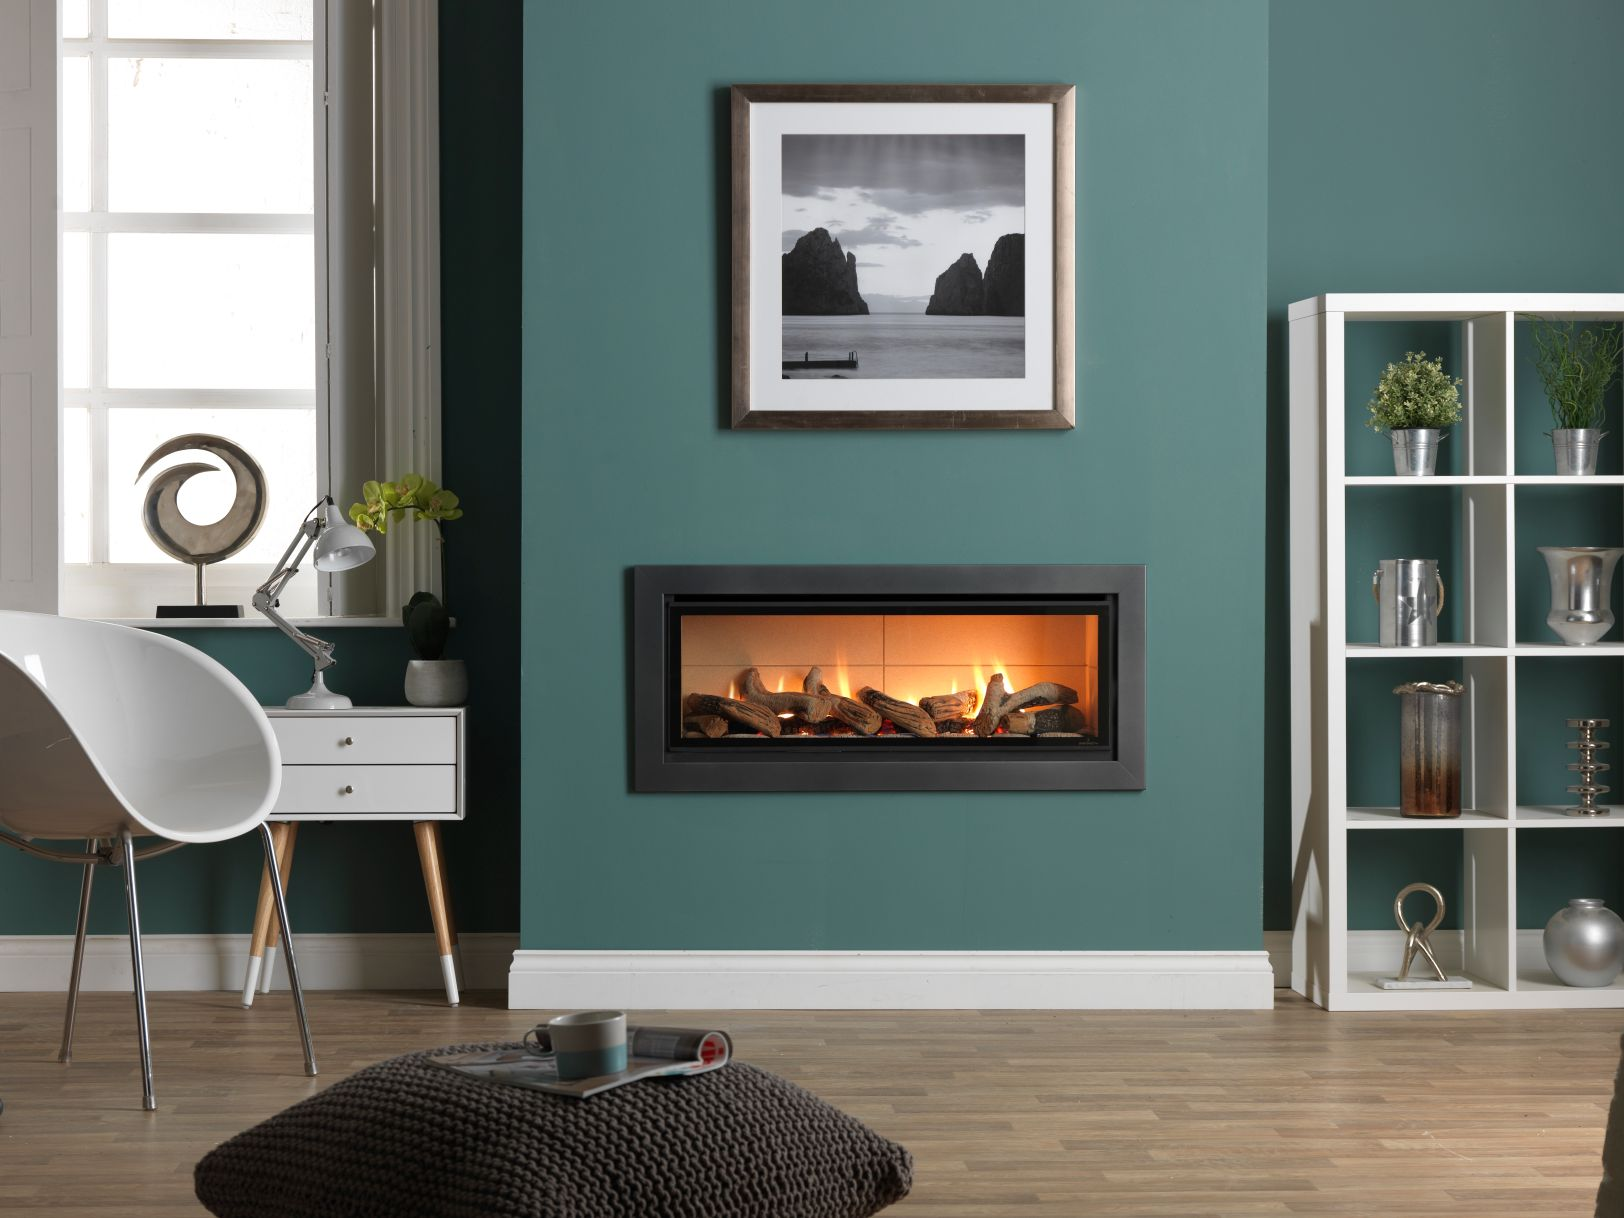 Infinity 890HD Hole in the Wall Gas Fire with Graphite Trim